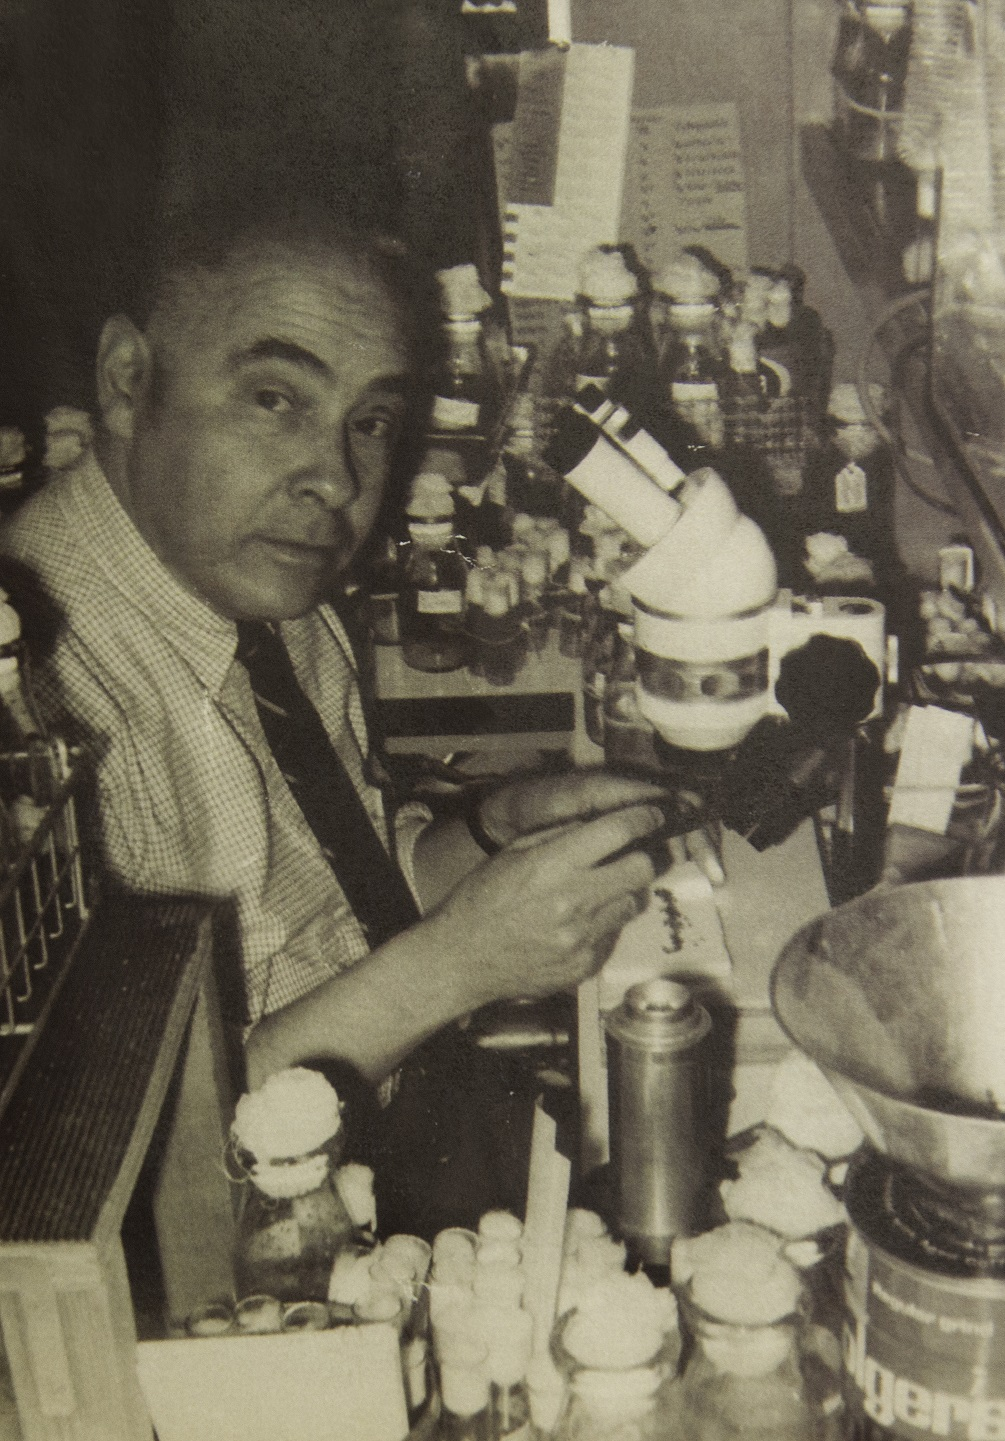 The lab bench was a favorite spot of Mel's, as evidenced by this photo of him taken in January 1967. Courtesy photo